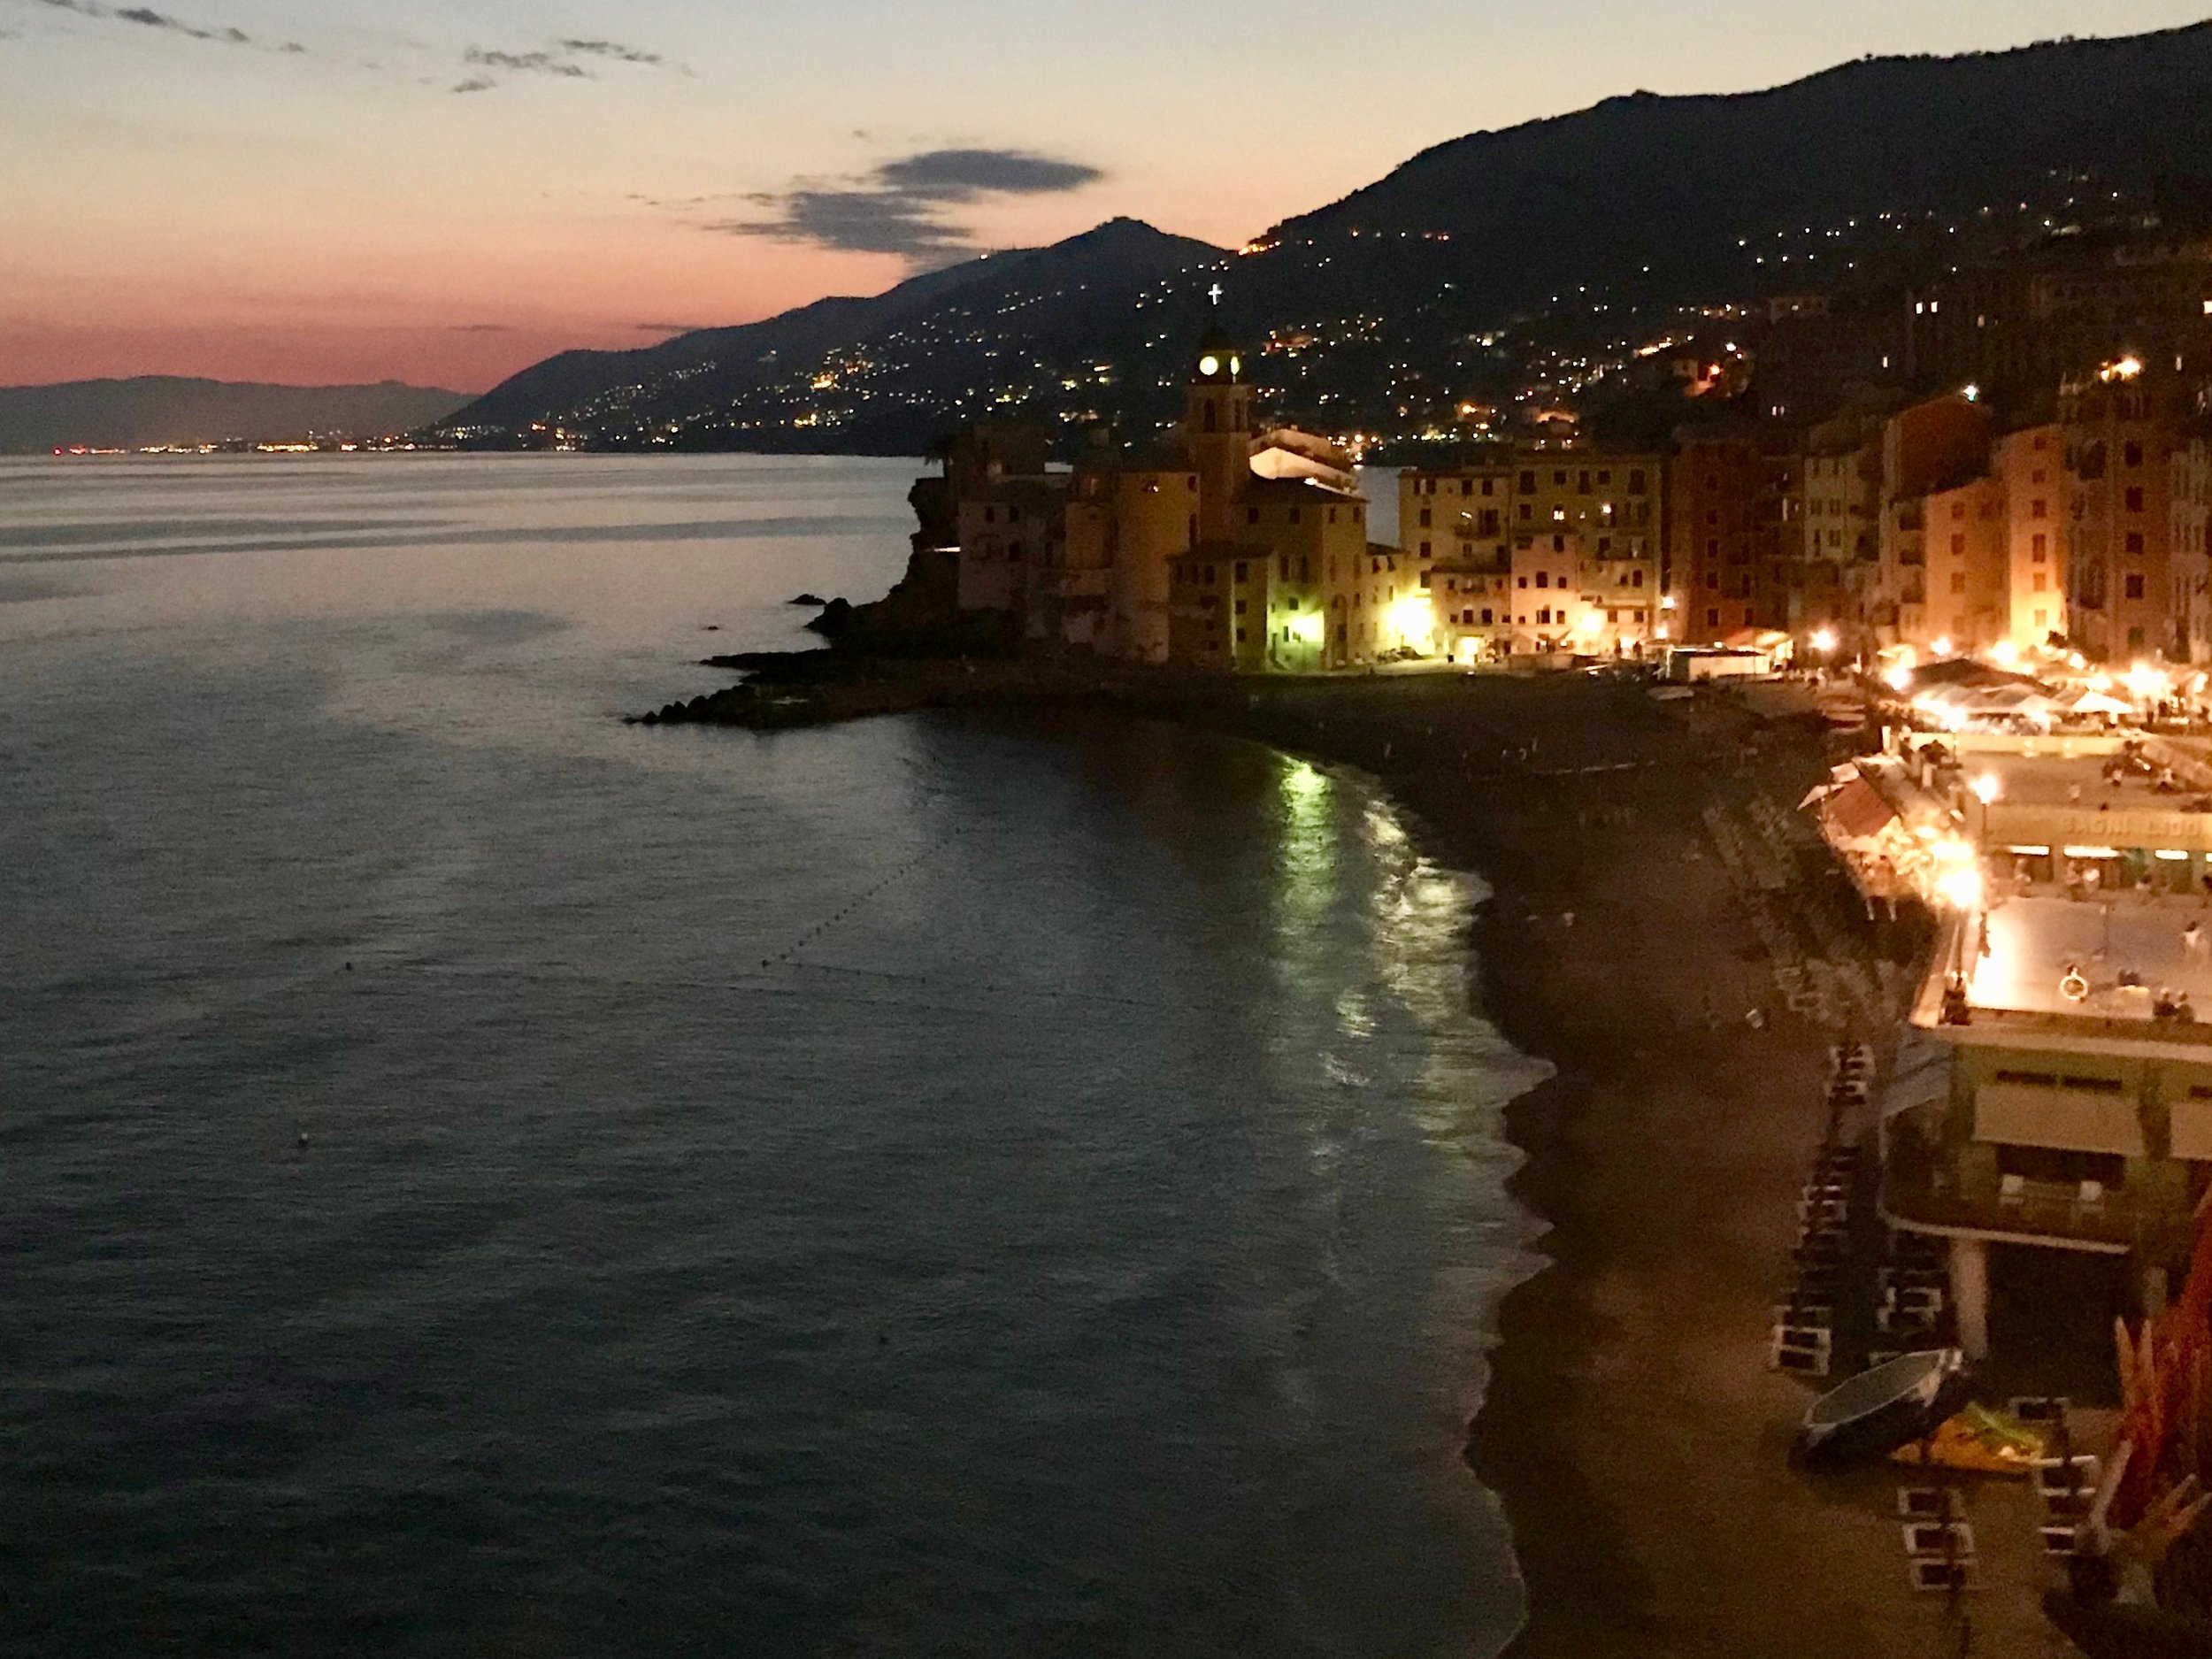 Camogli glows   under a setting sun